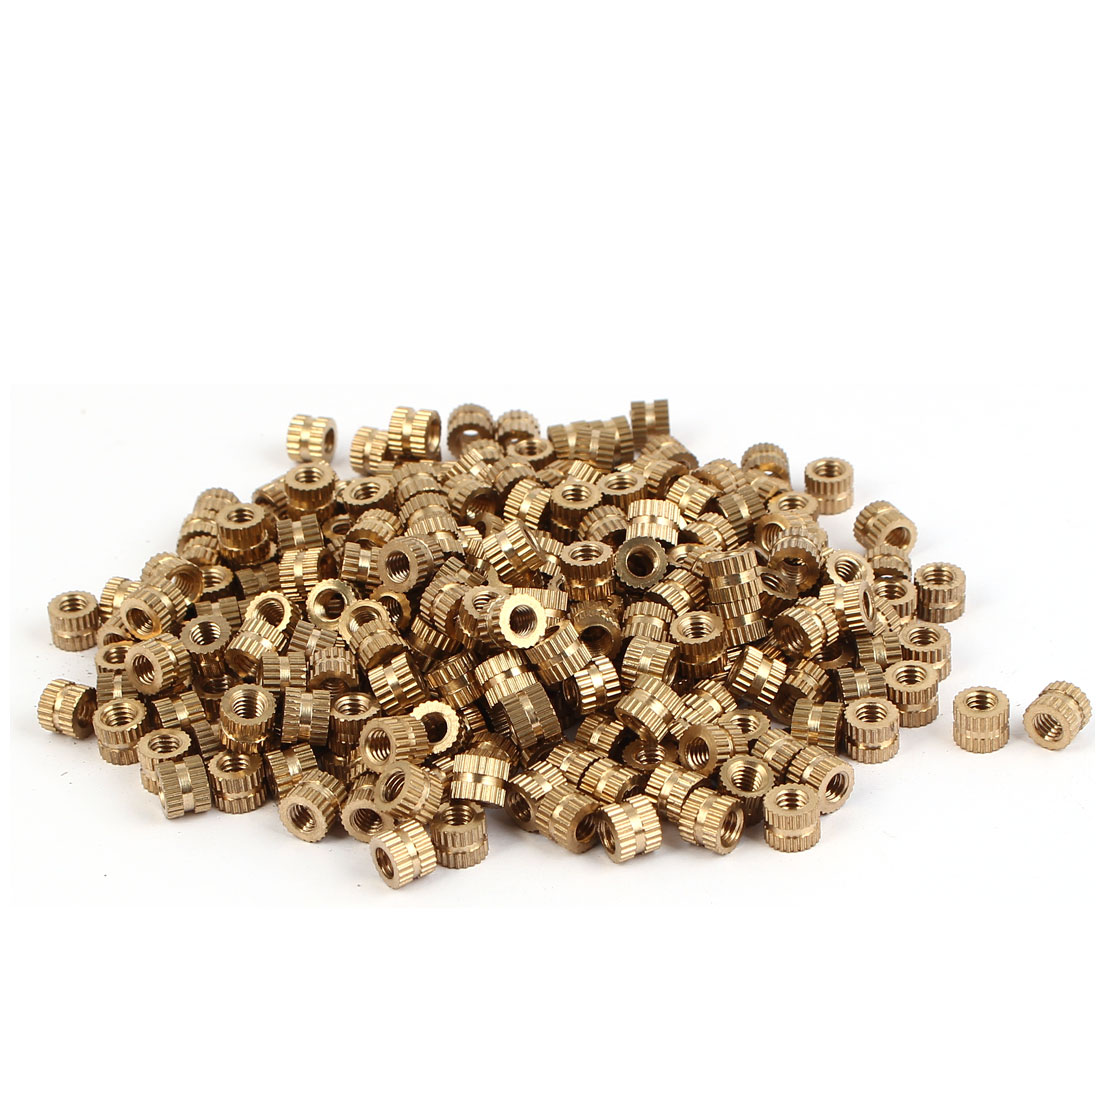 M4 x 5mm Female Thread Brass Knurled Threaded Round Insert Embedded Nuts 500PCS